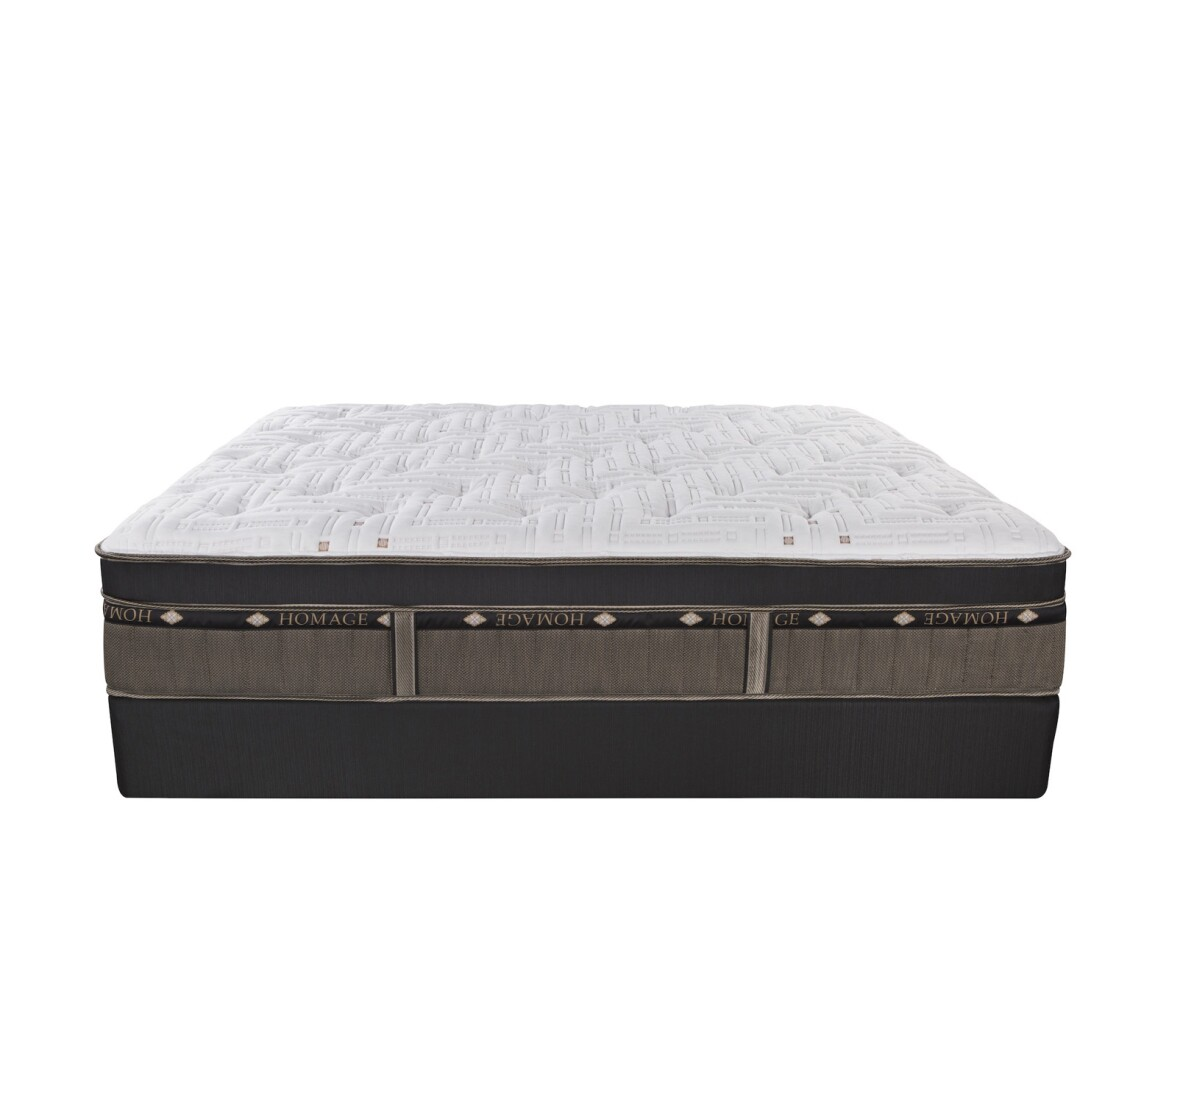 133438_Homage_Excellence Boxtop Mattress (2).jpg